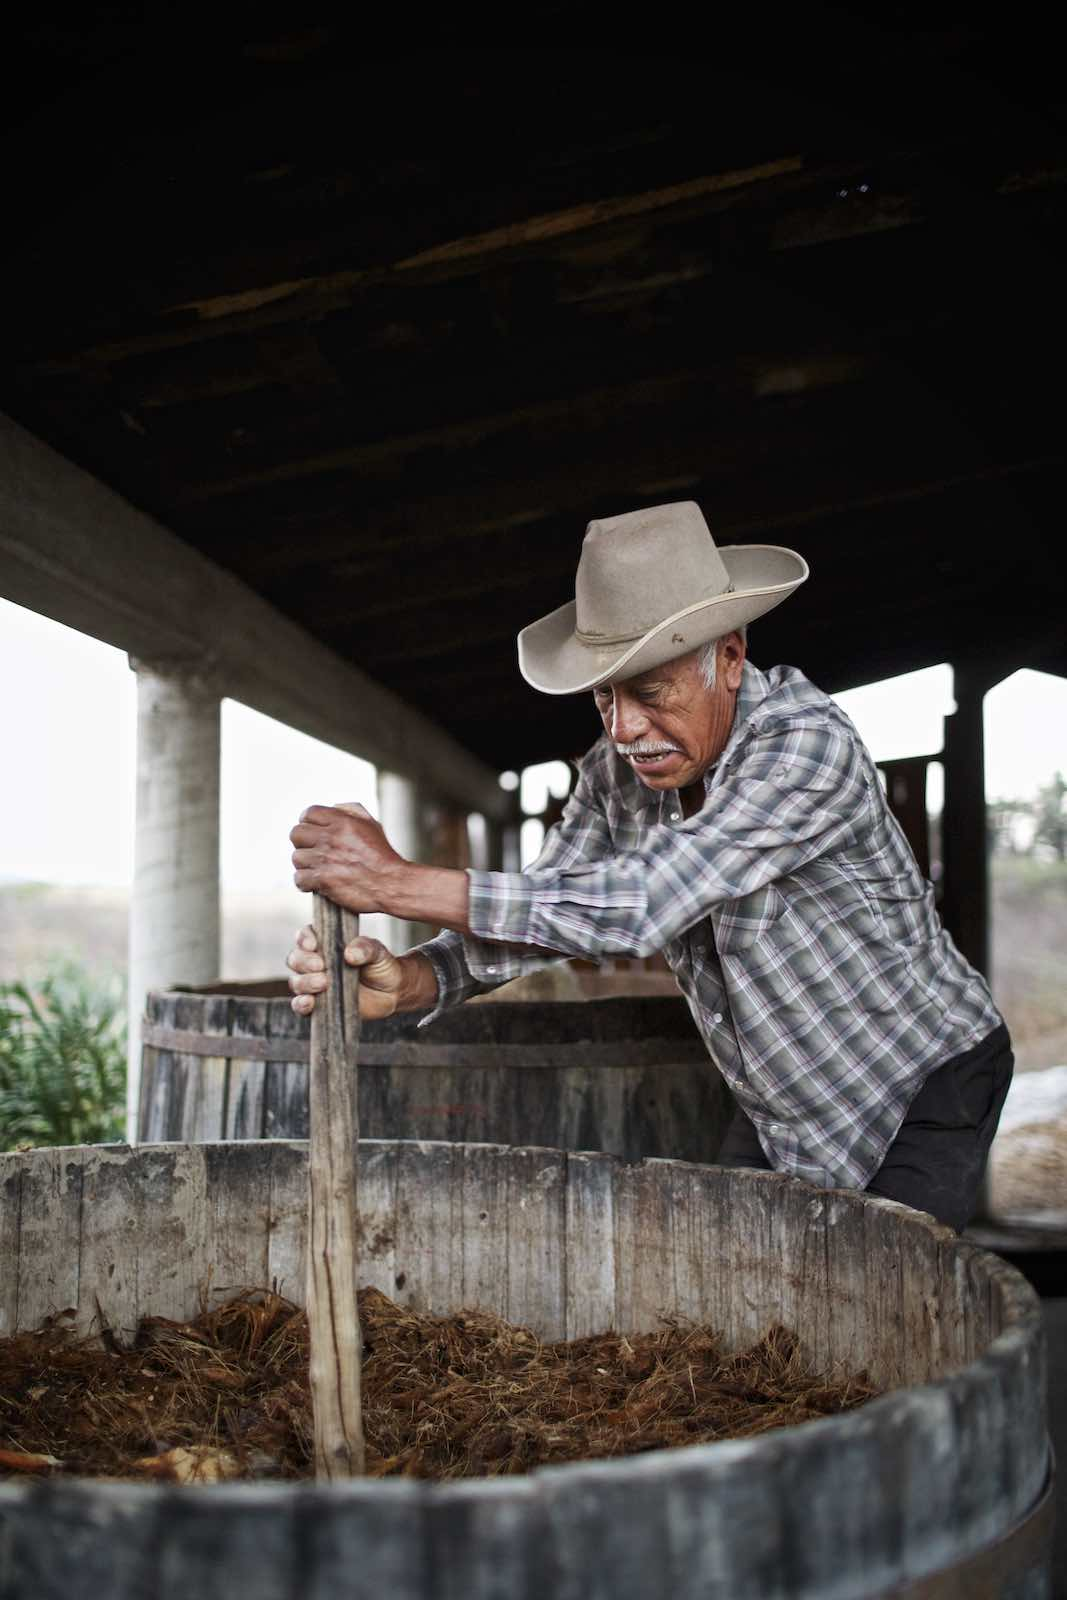 Jody Horton Photography - Farmer mixing agave fibers.